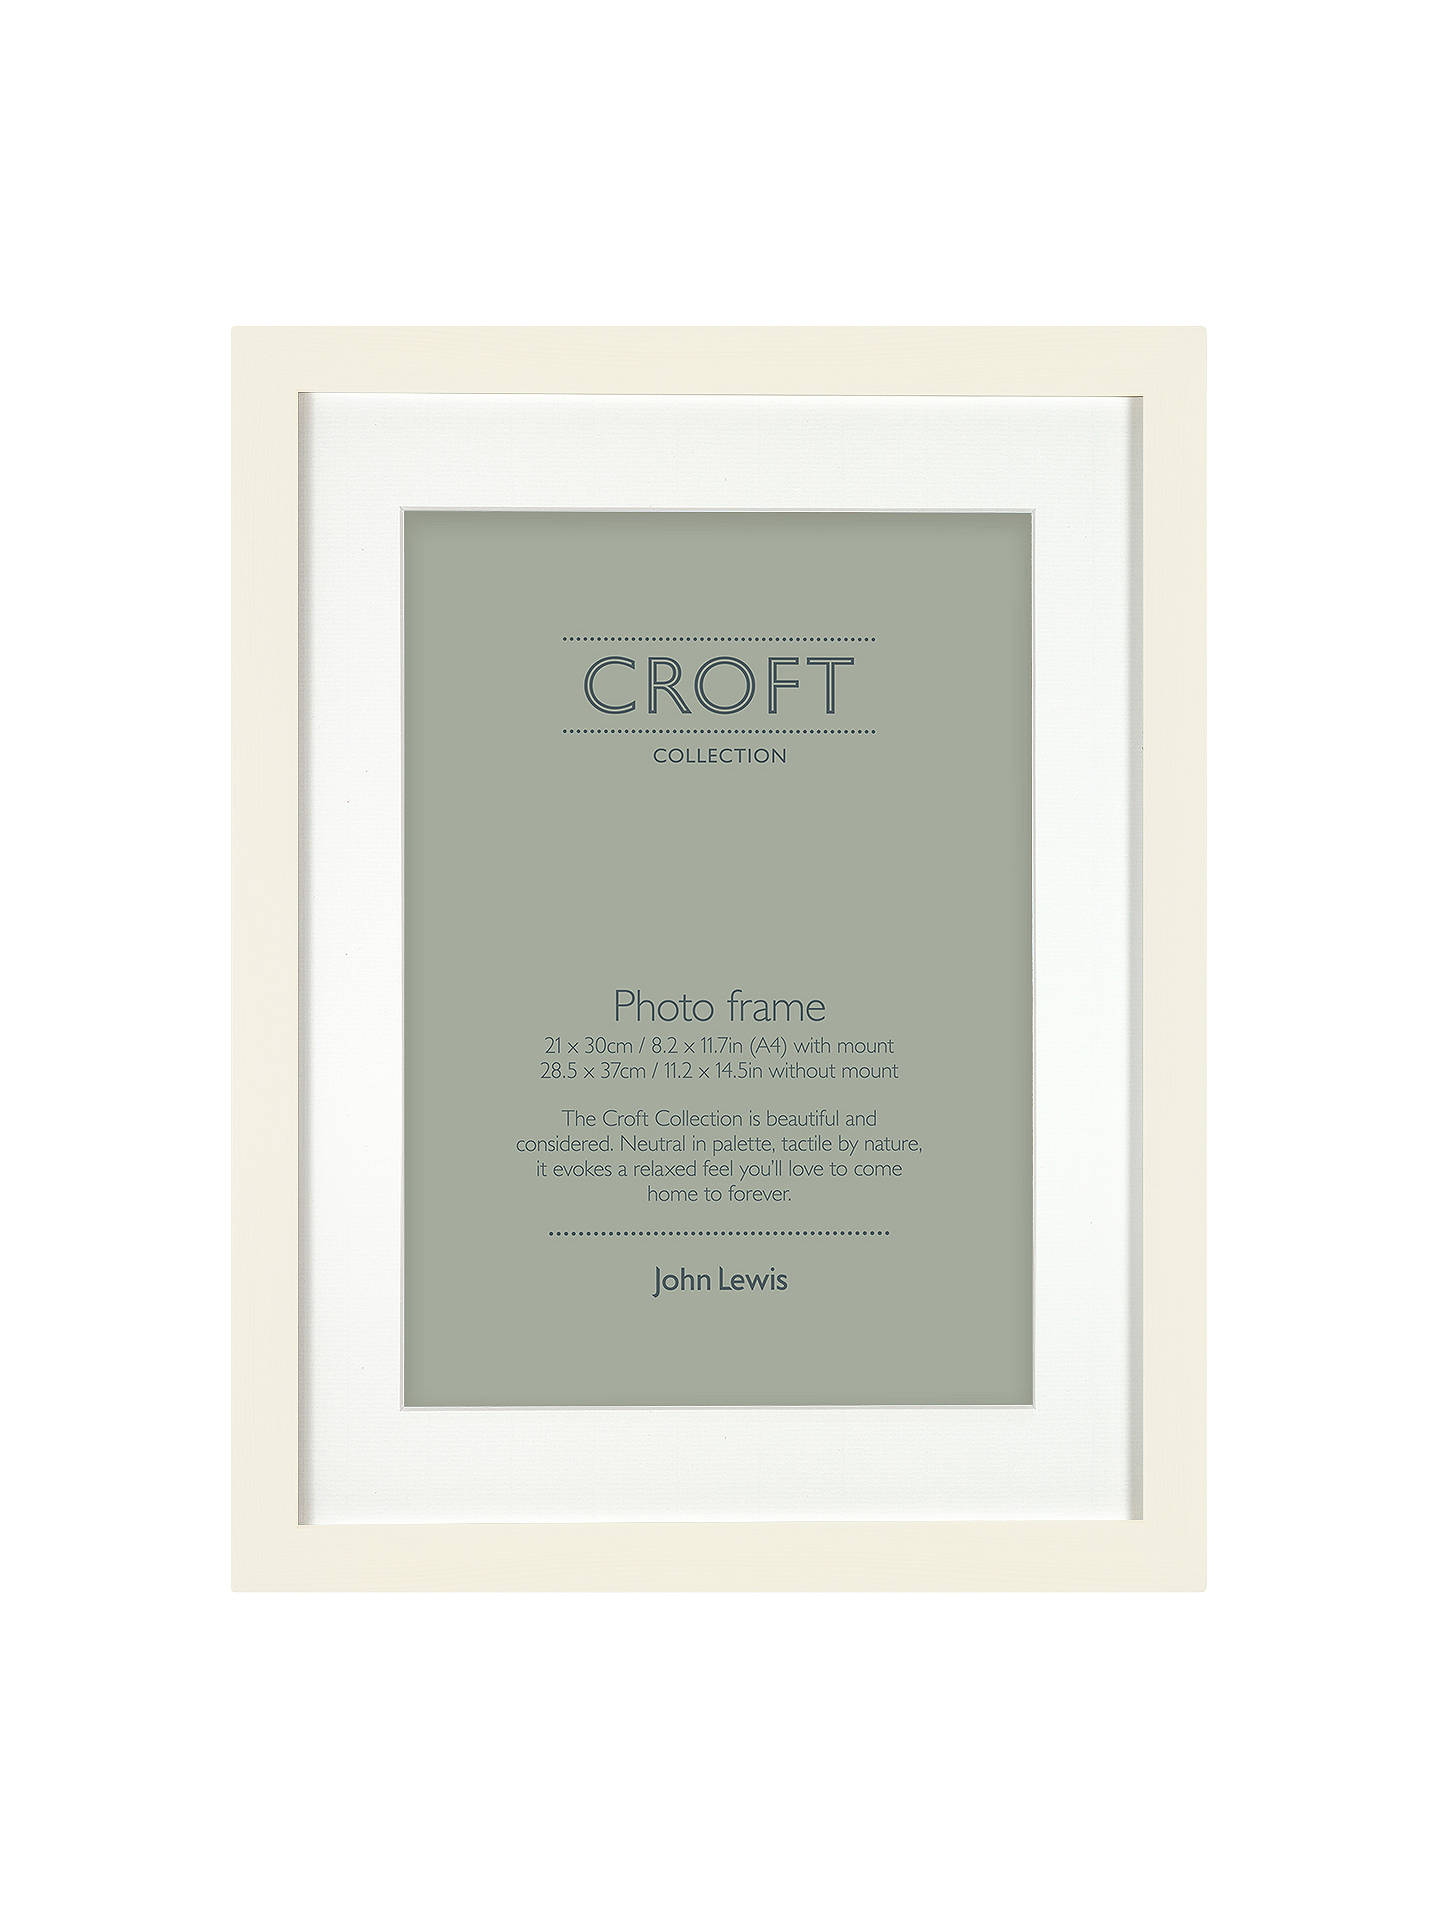 Croft Collection Frame Mount Fsc Certified A4 21 X 30cm At John